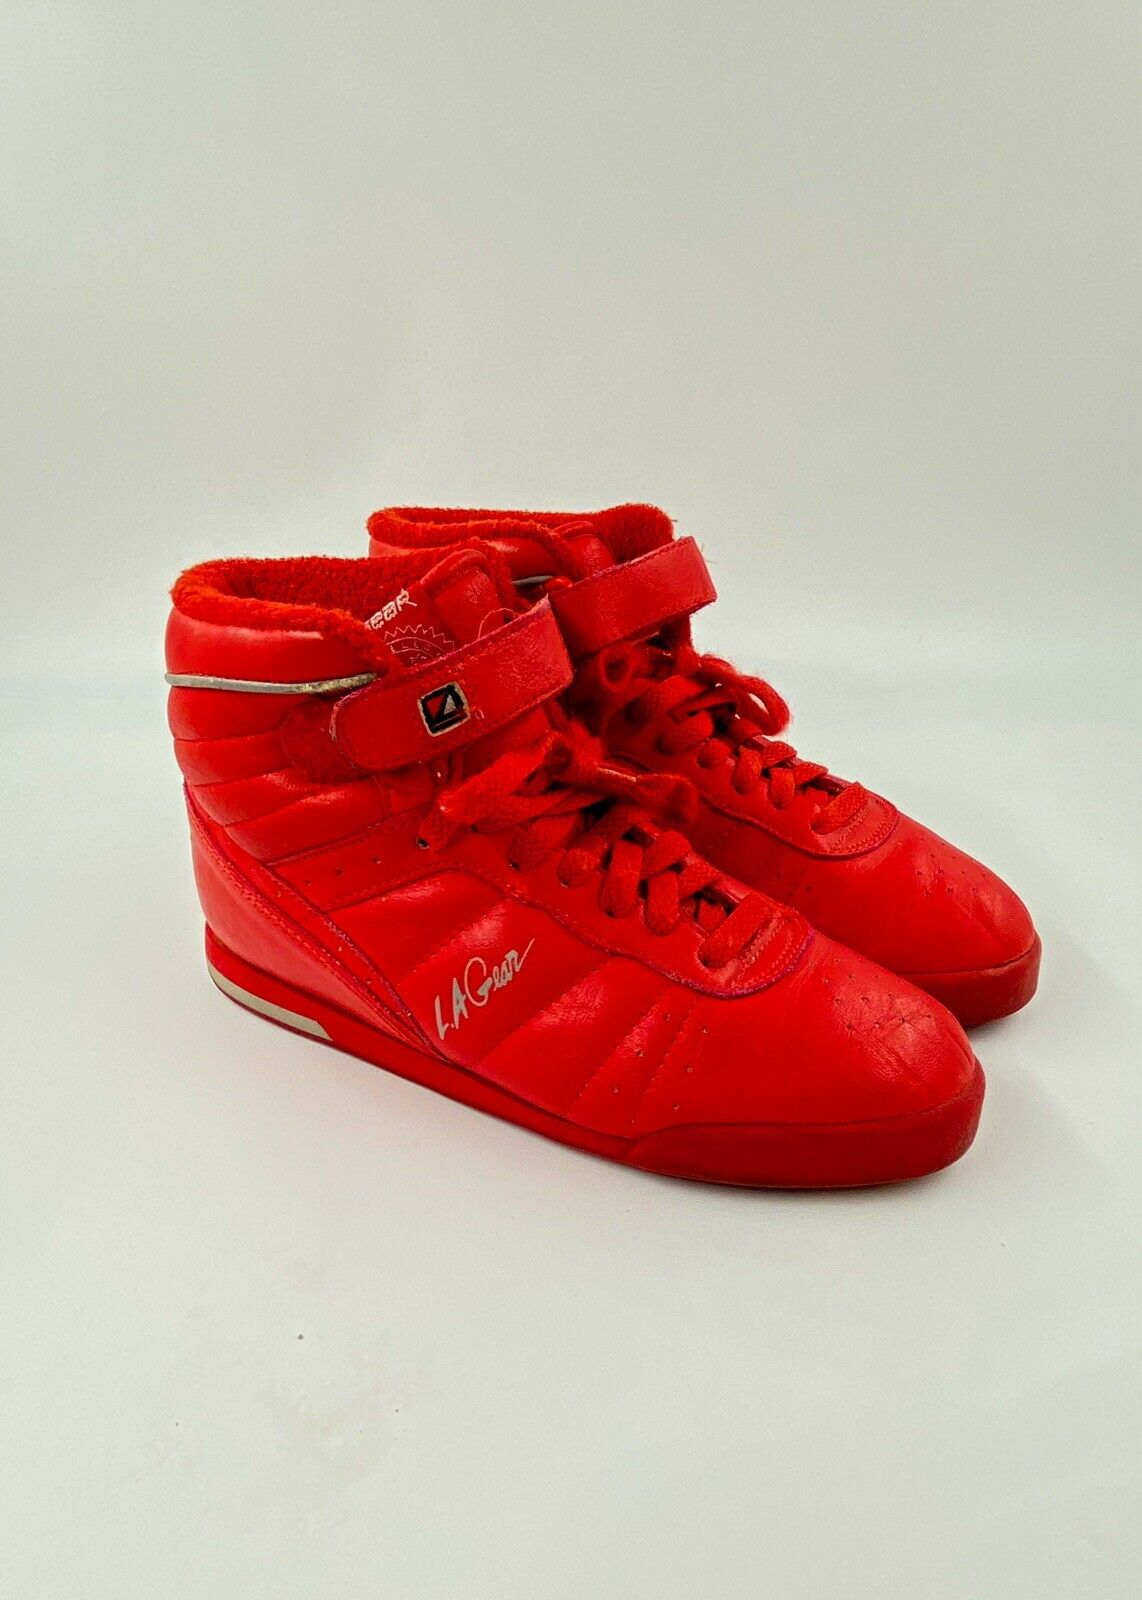 L.A. Gear 6.5 Vintage 80s Red Sneakers 90s Tennis… - image 3